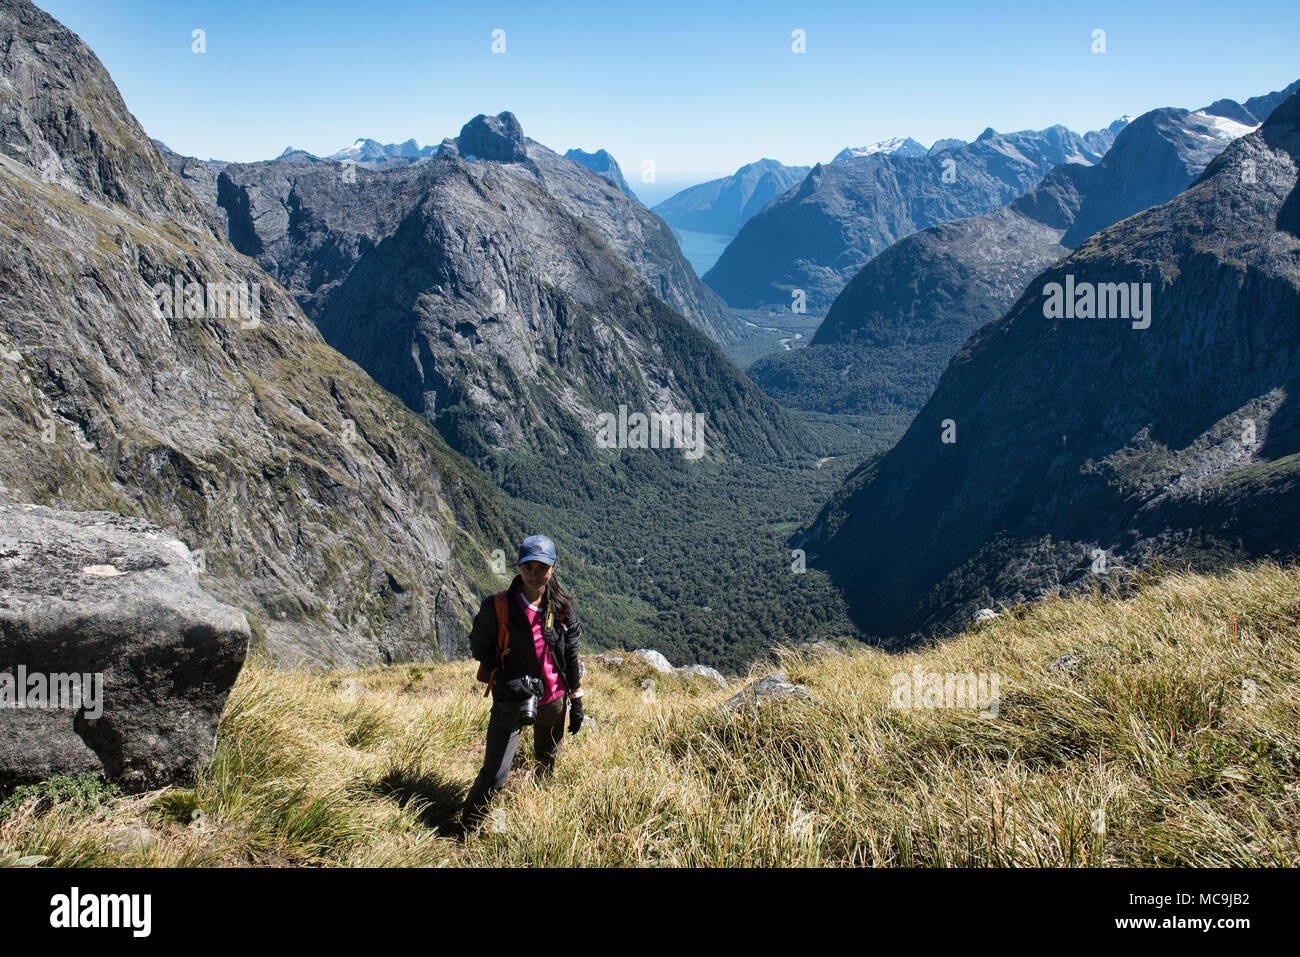 Incredible views from the Gertrude Saddle, Fjordland, New Zealand - Stock Image